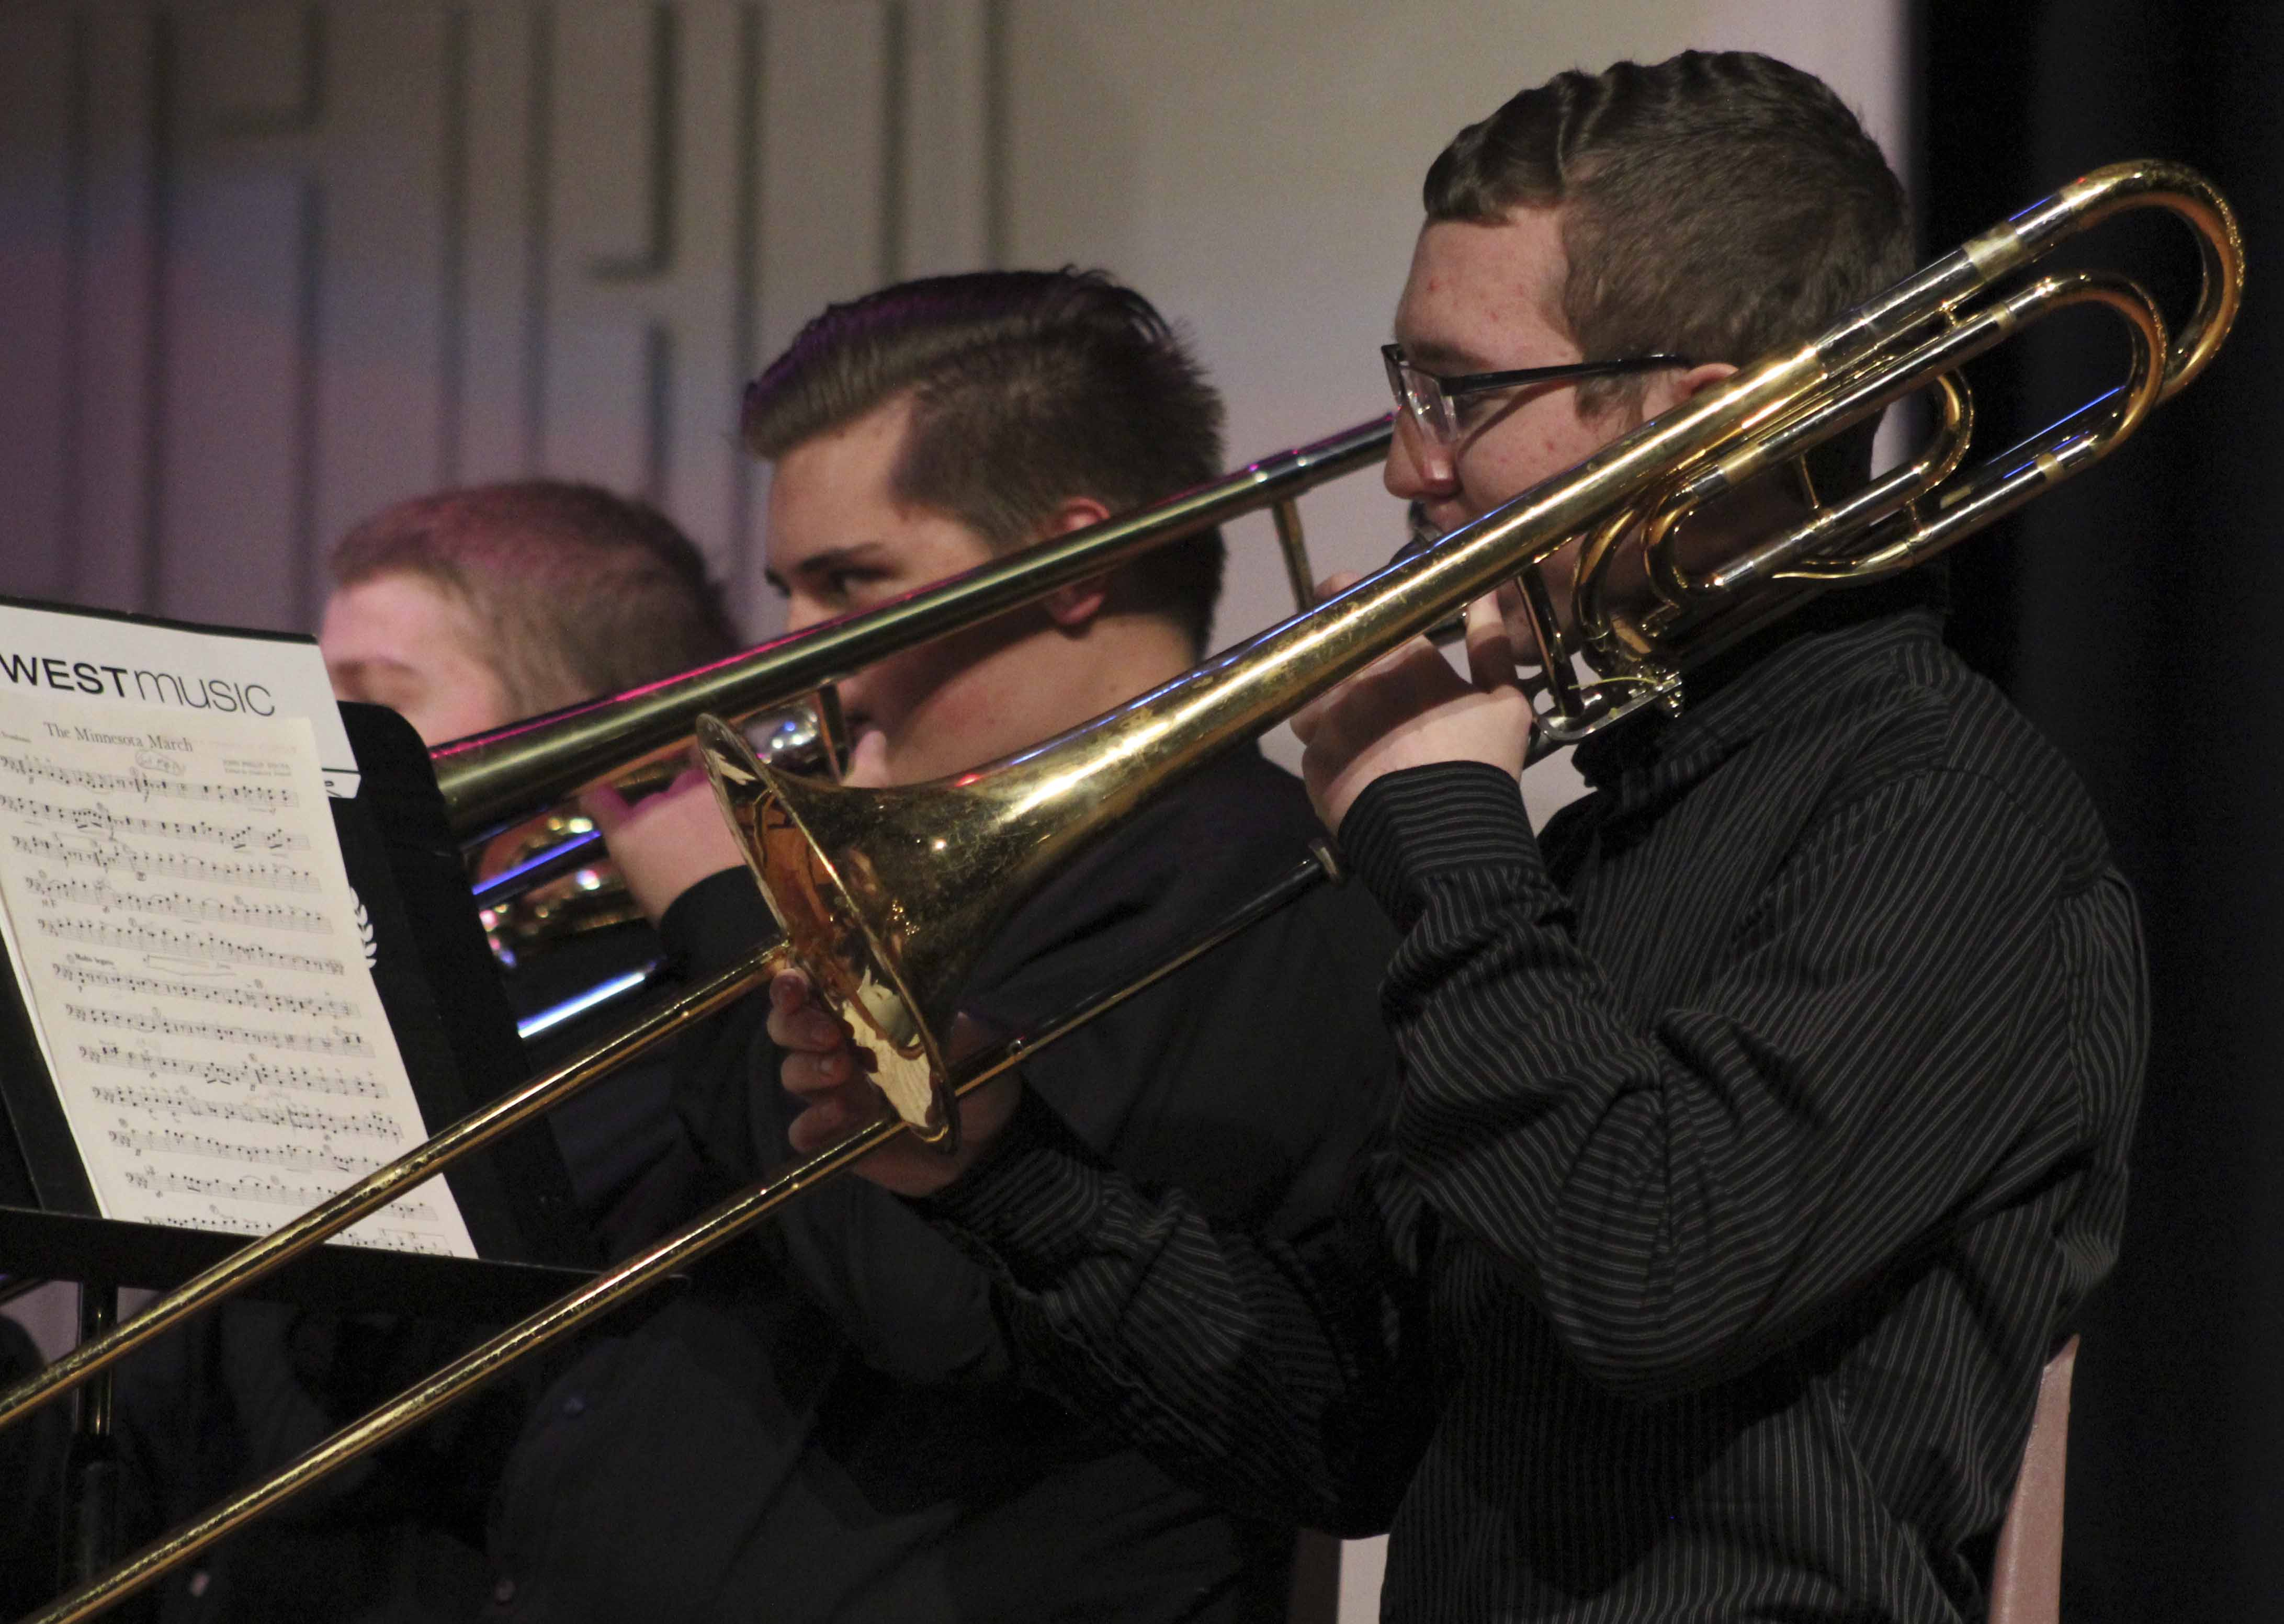 Trombone players Gabe Wright (front) and Davin Wickman play with the symphony band at Thursday's concert.